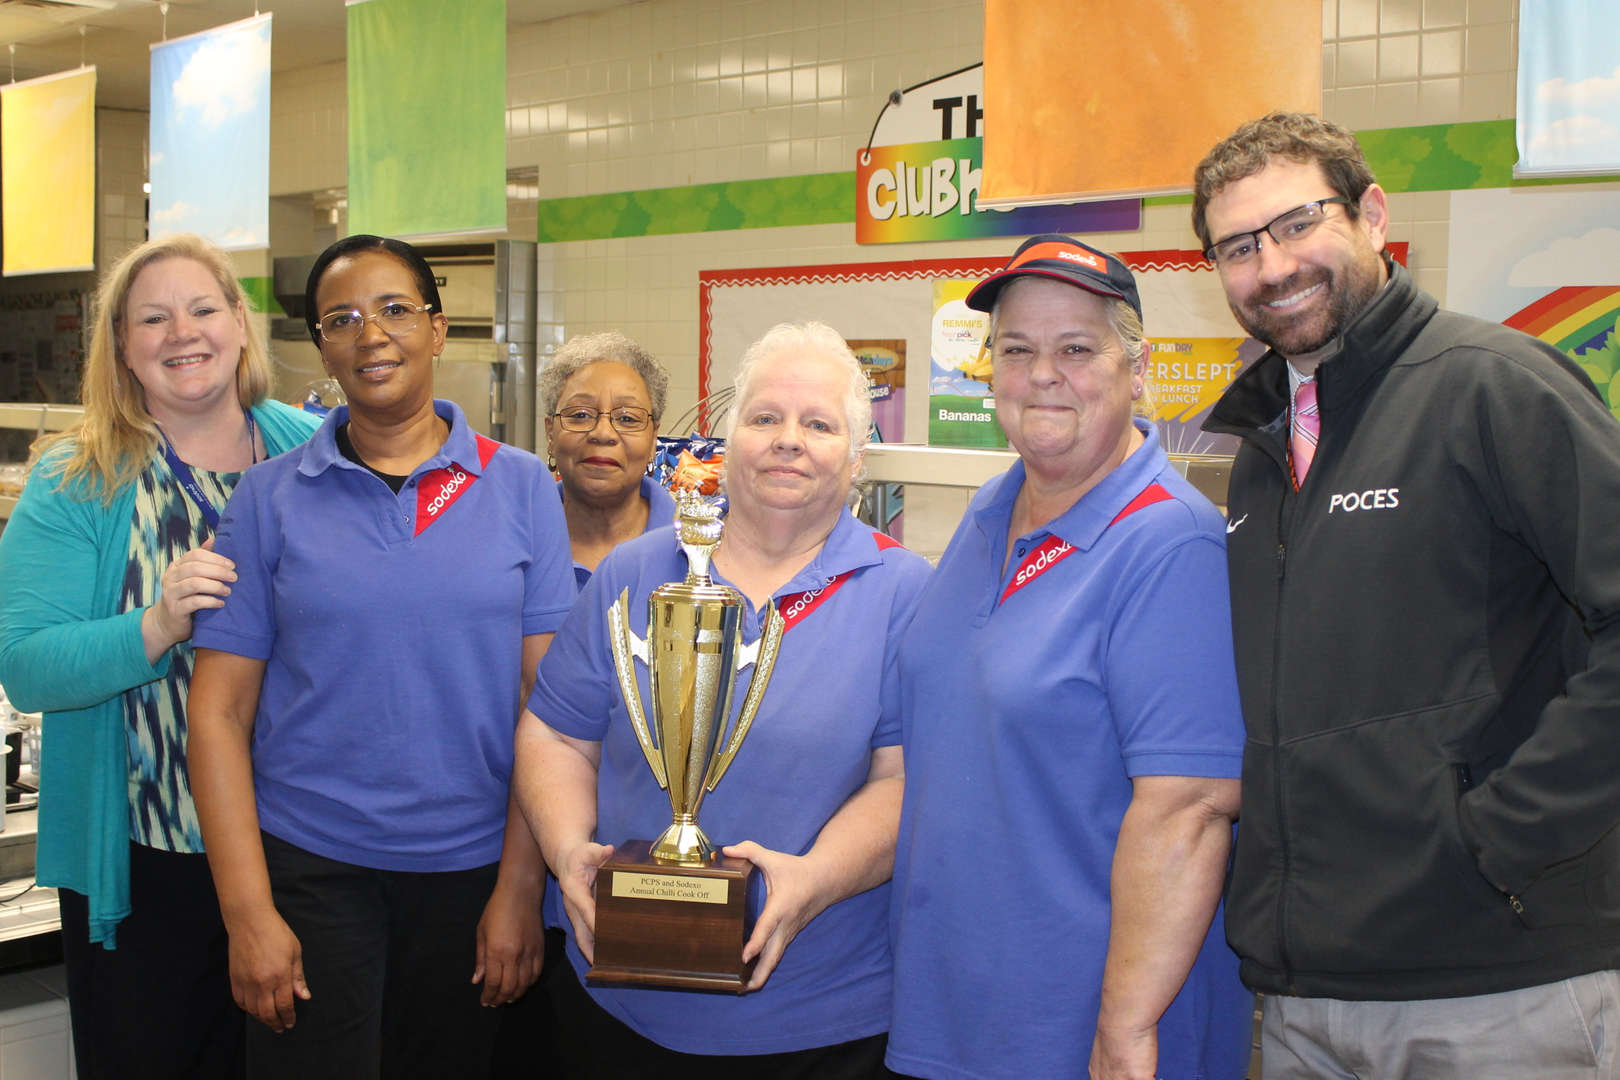 Thomas Sulzer, cafeteria staff, Dorothy Kohler with chili cookoff trophy